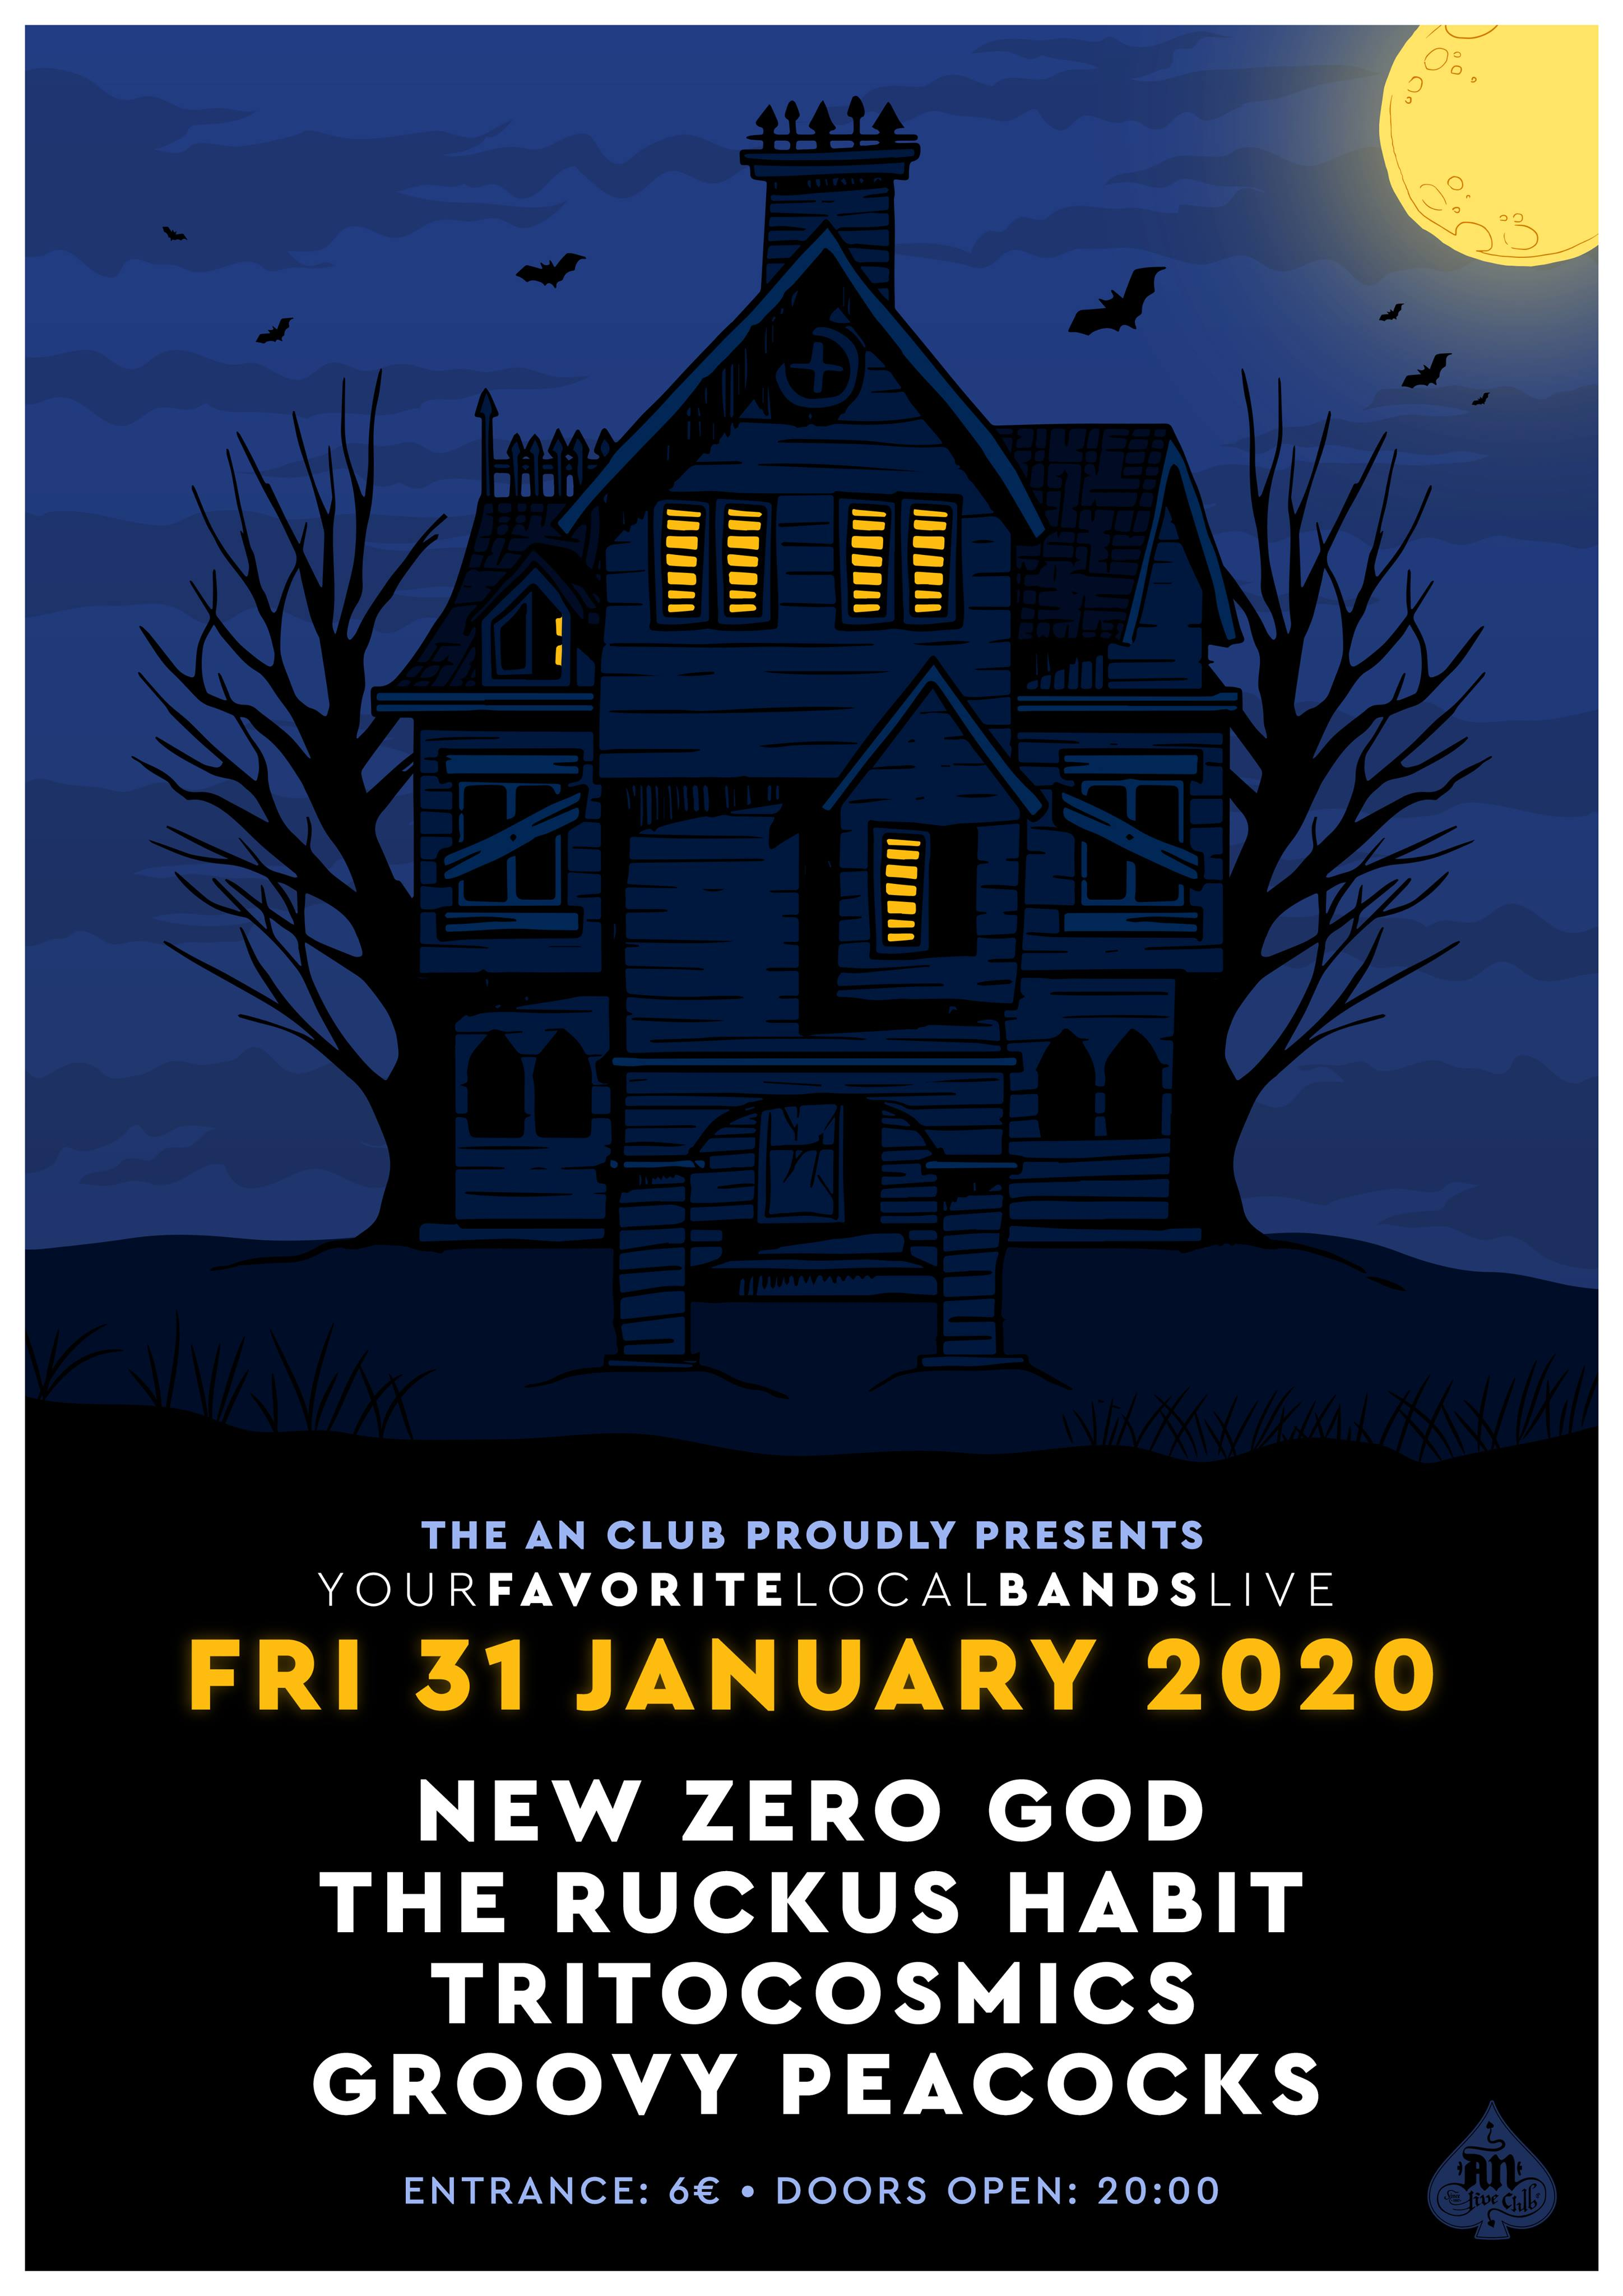 New Zero God FRI 31 January